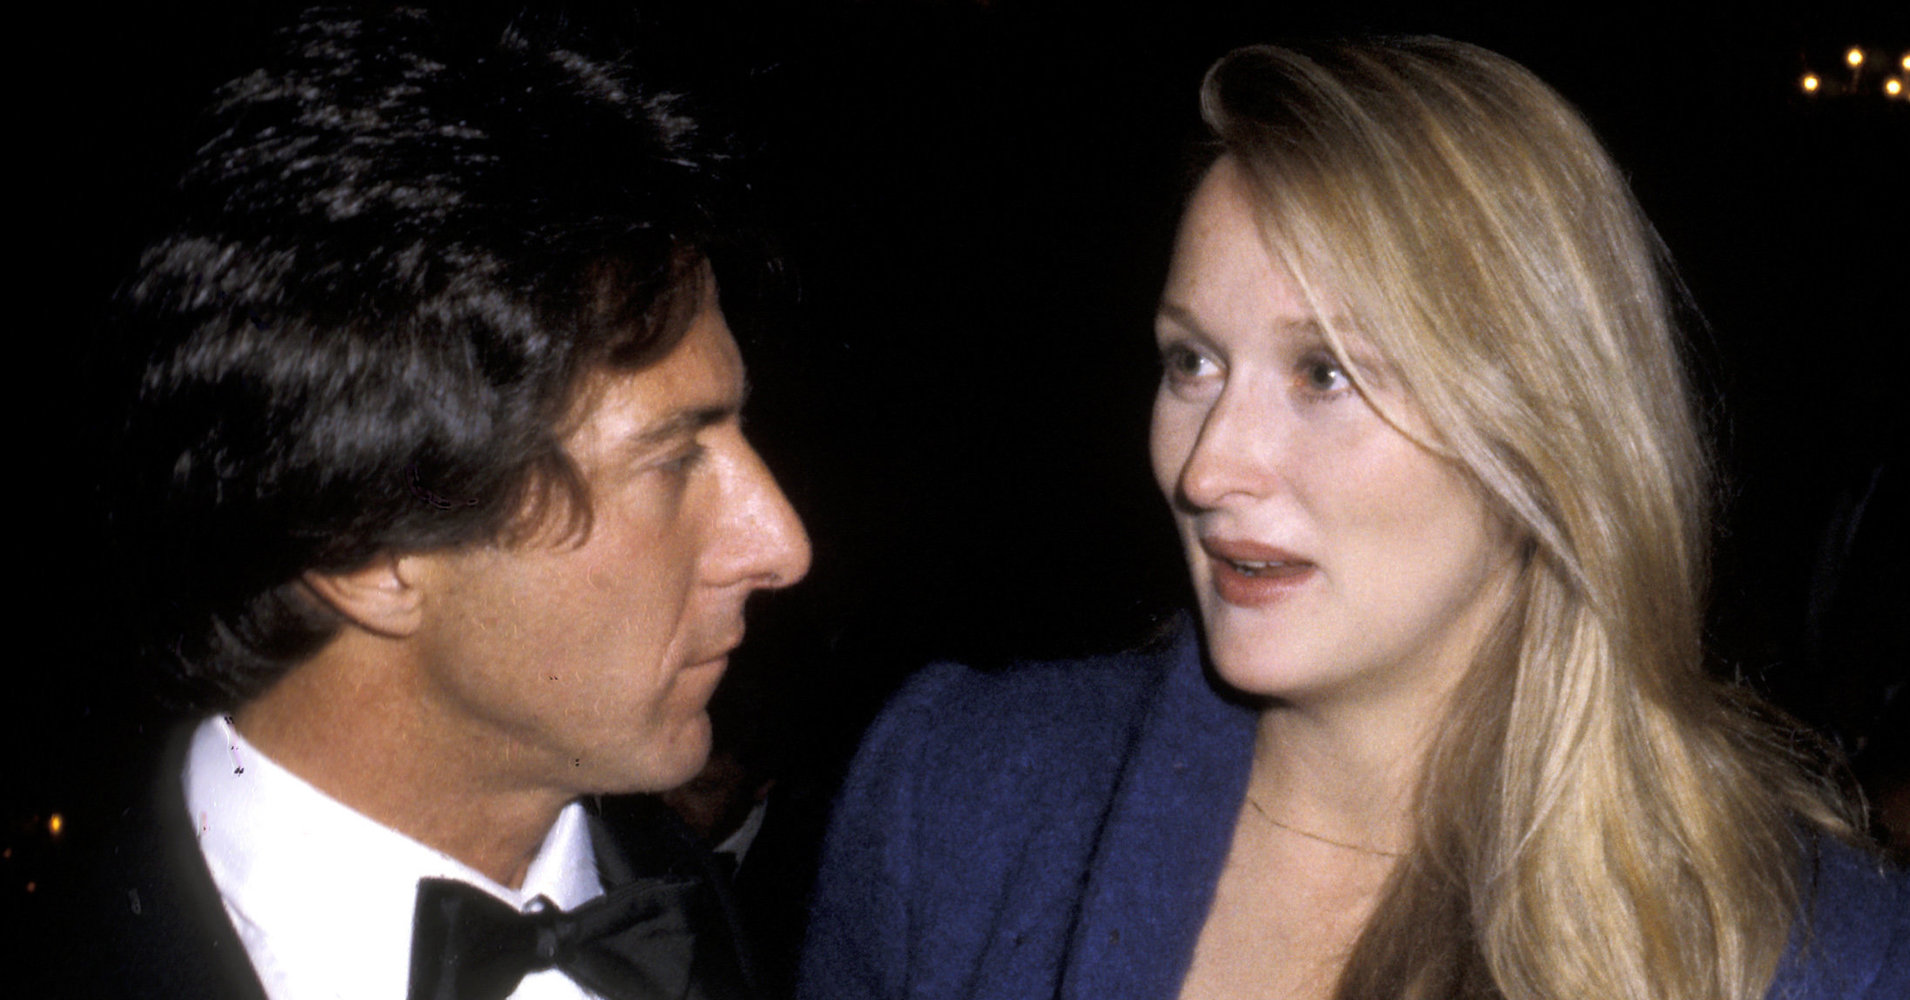 Meryl Streep Recalls That Time Dustin Hoffman Slapped Her On Set